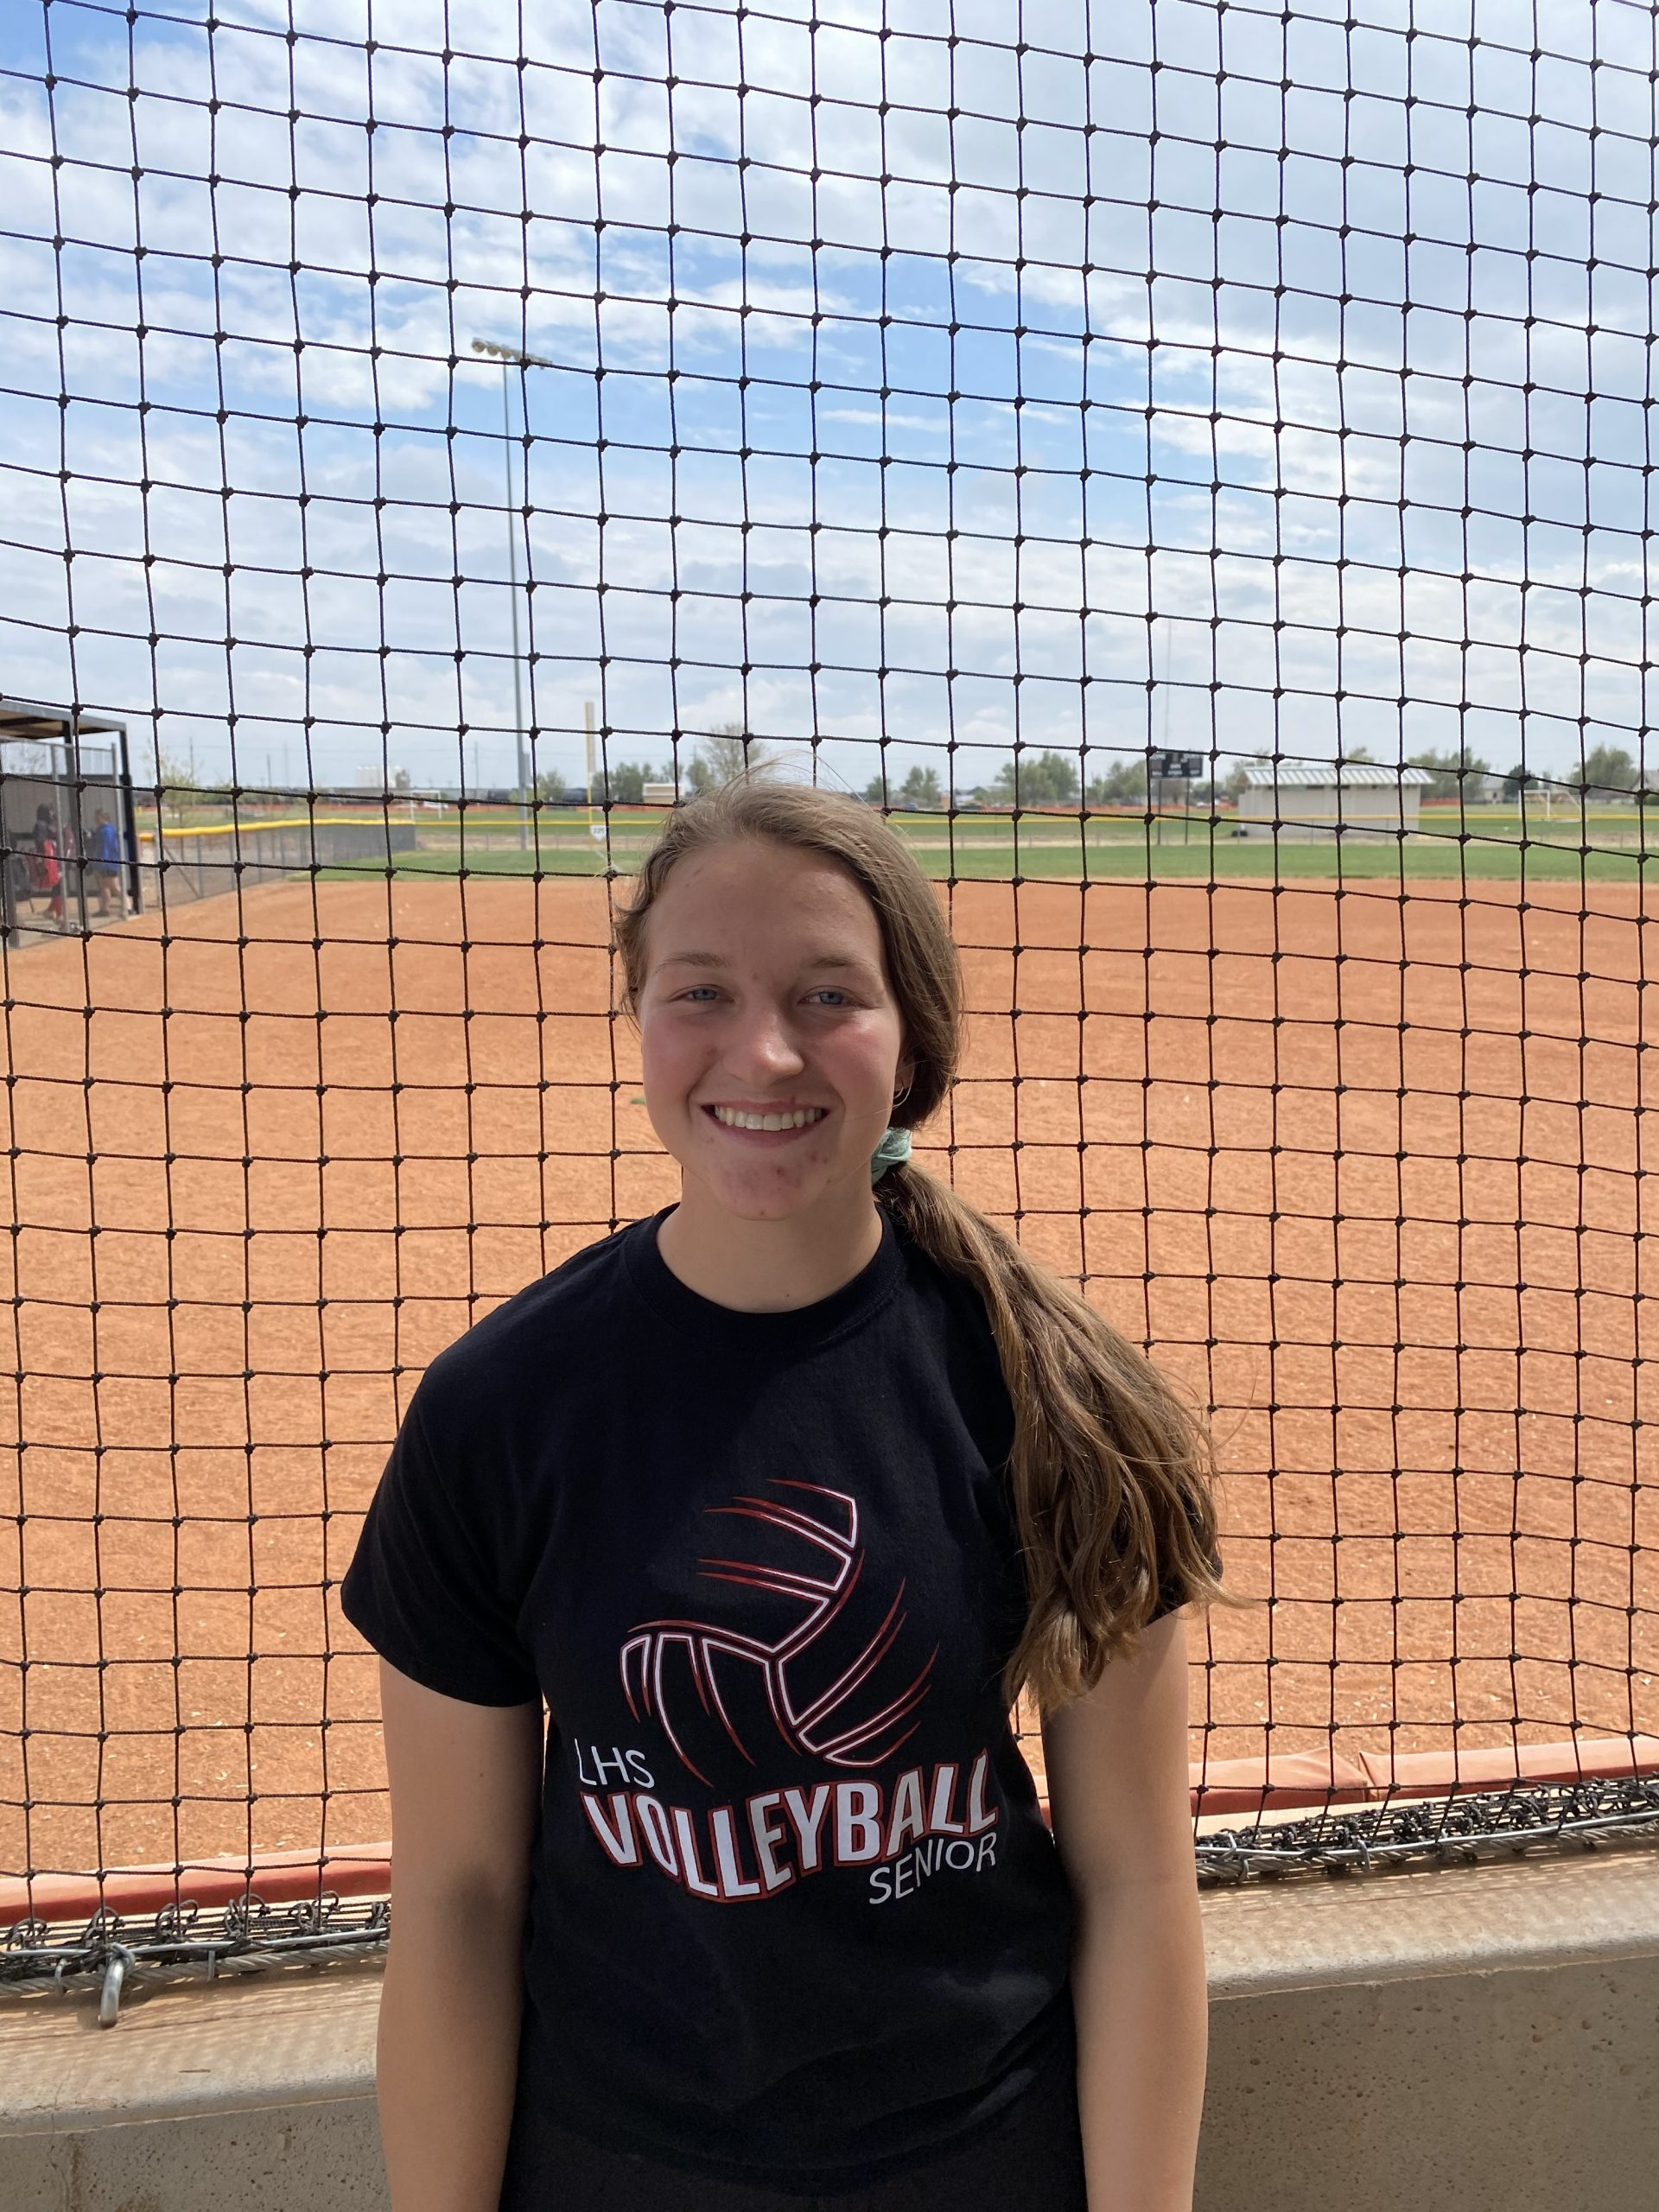 McClure and Ormiston All WAC in Softball